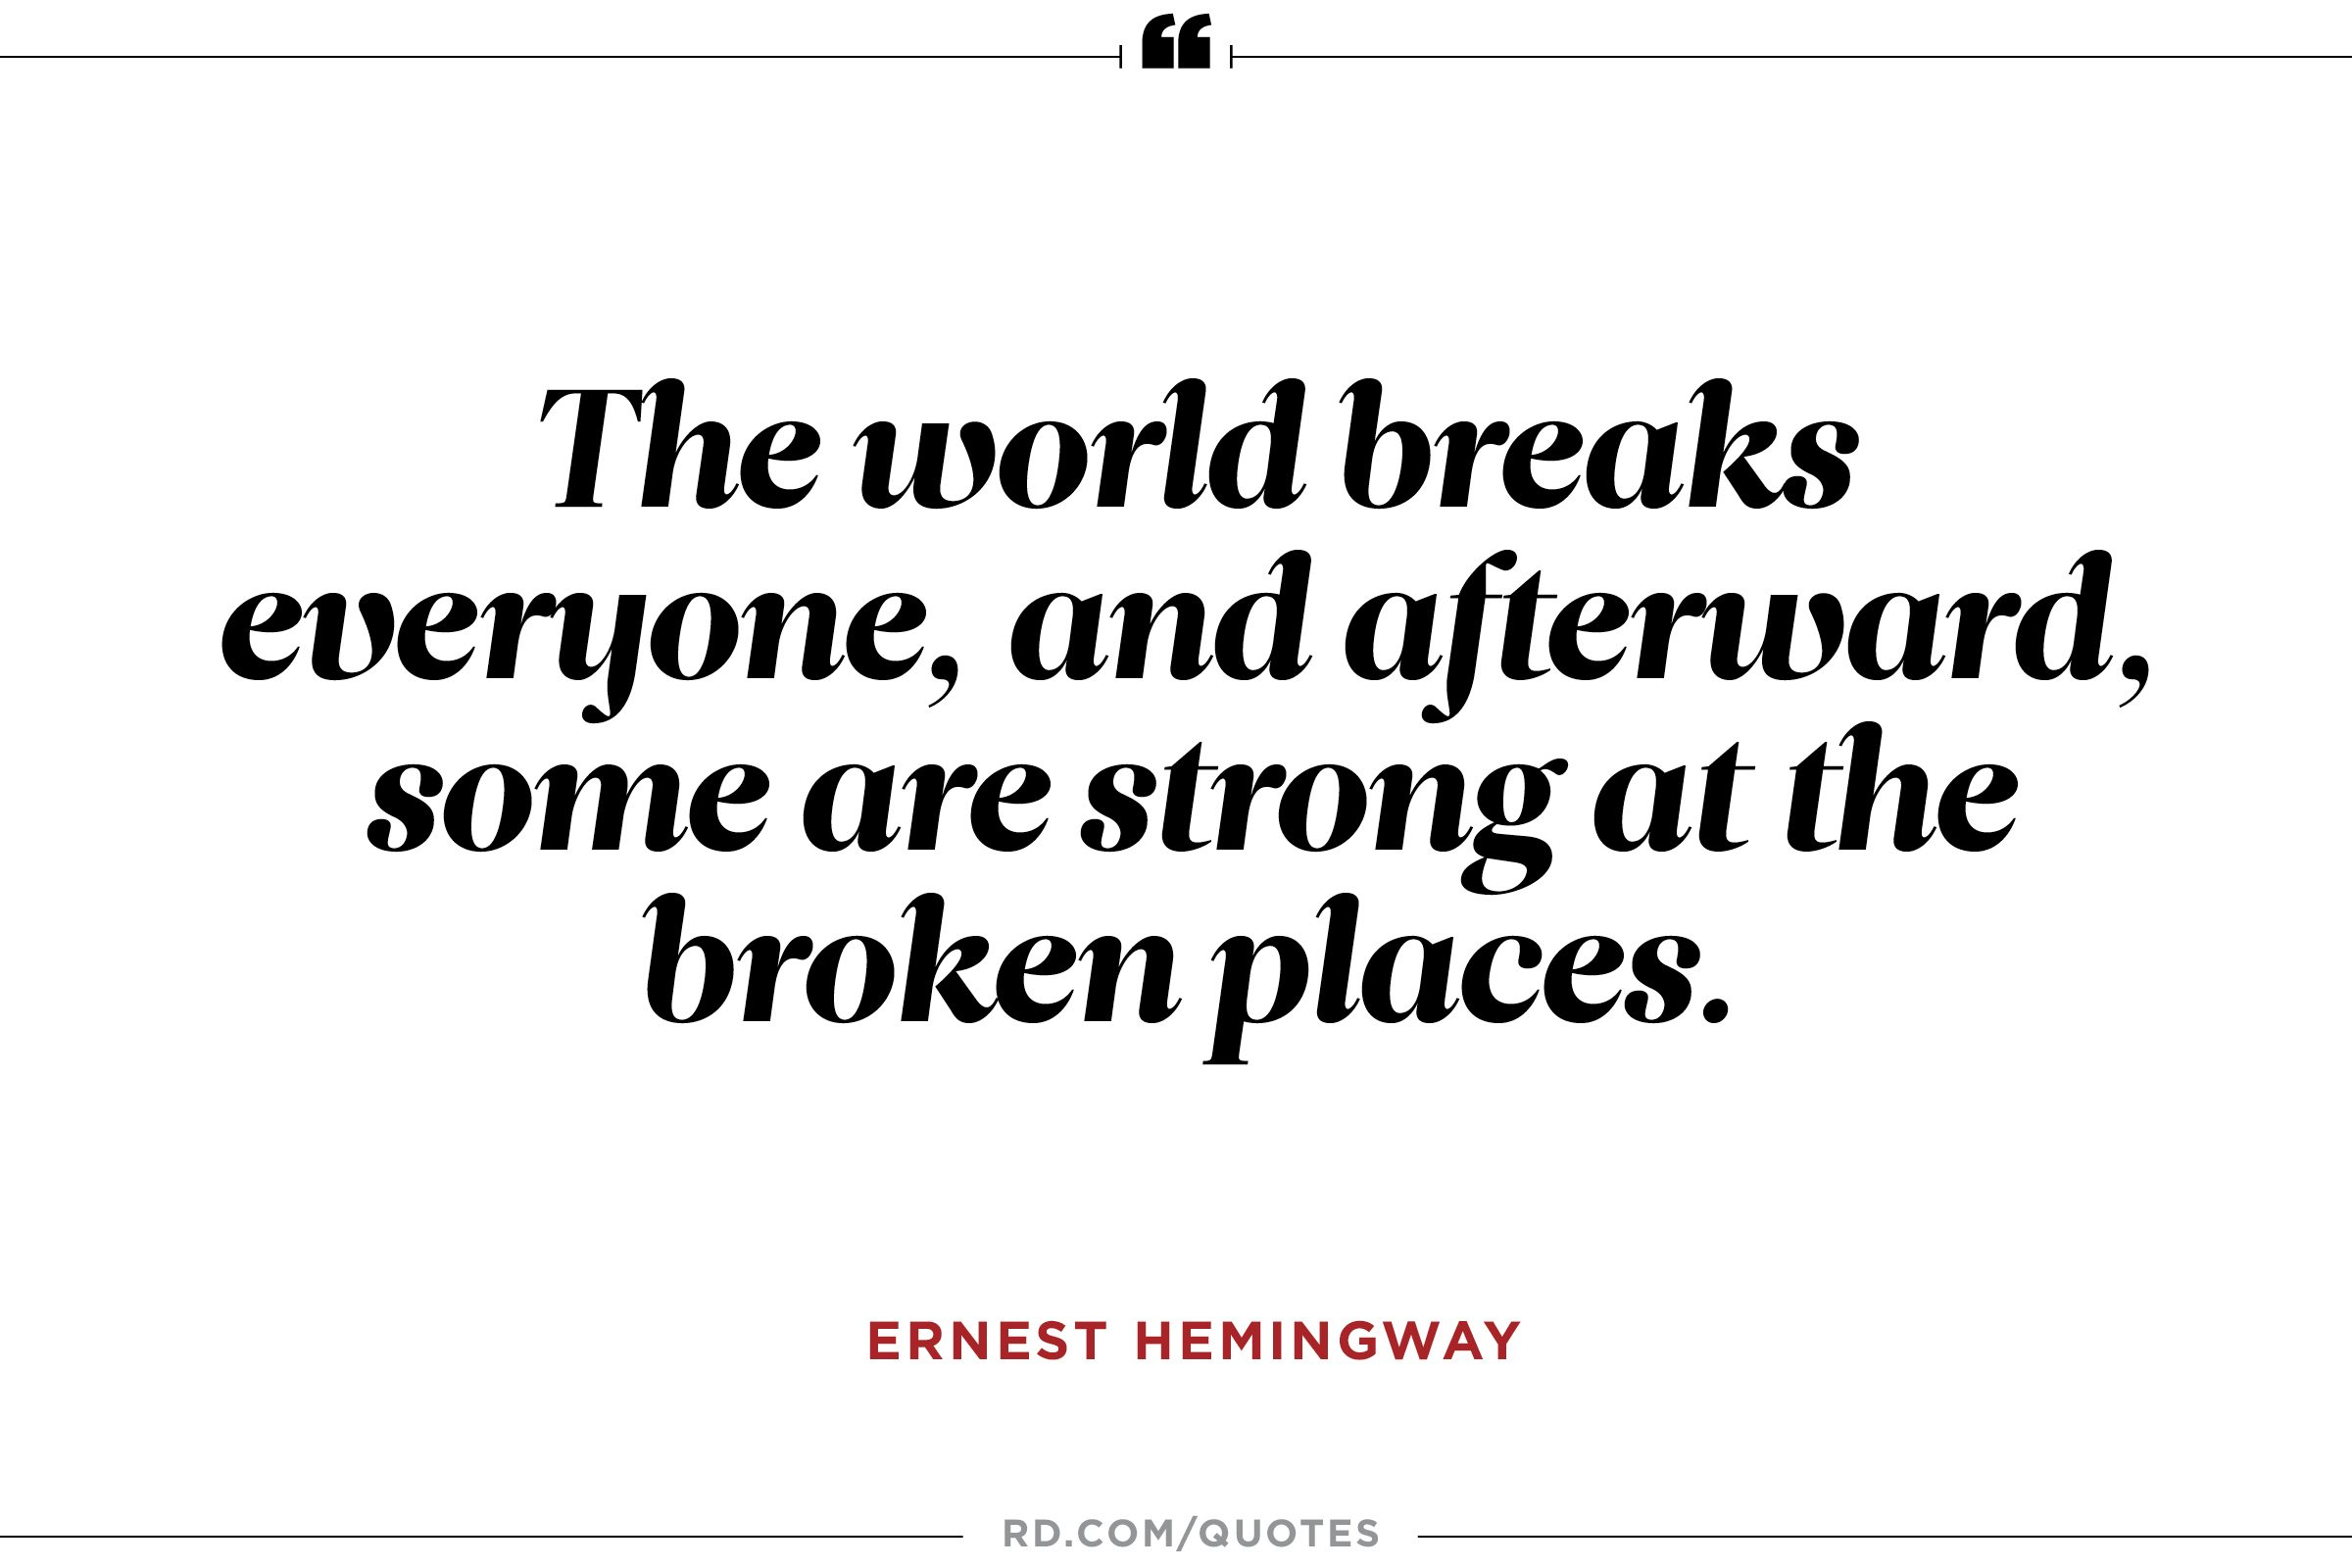 Hemingway Quotes On Love 12 Inspiring Ernest Hemingway Quotes  Reader's Digest